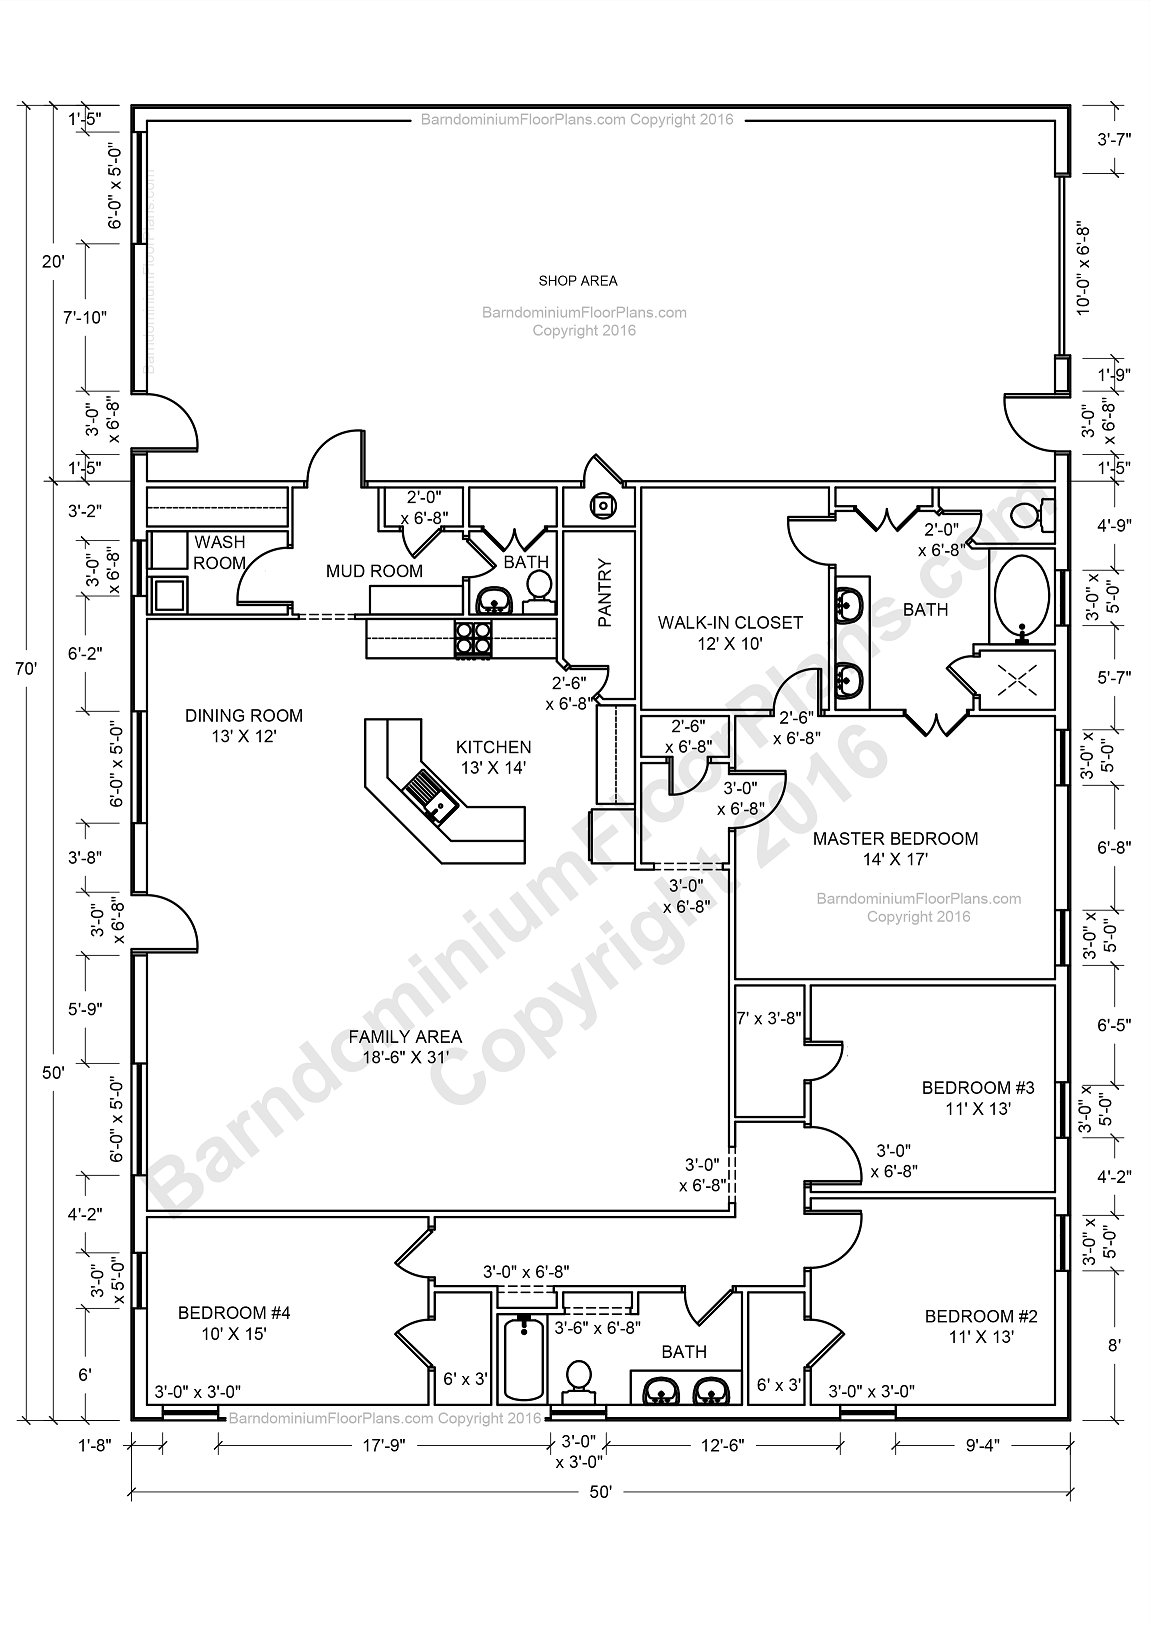 Best Barndominium Floor Plans For Planning Your Barndominium House Metal House Plans Pole Barn House Plans Barndominium Floor Plans